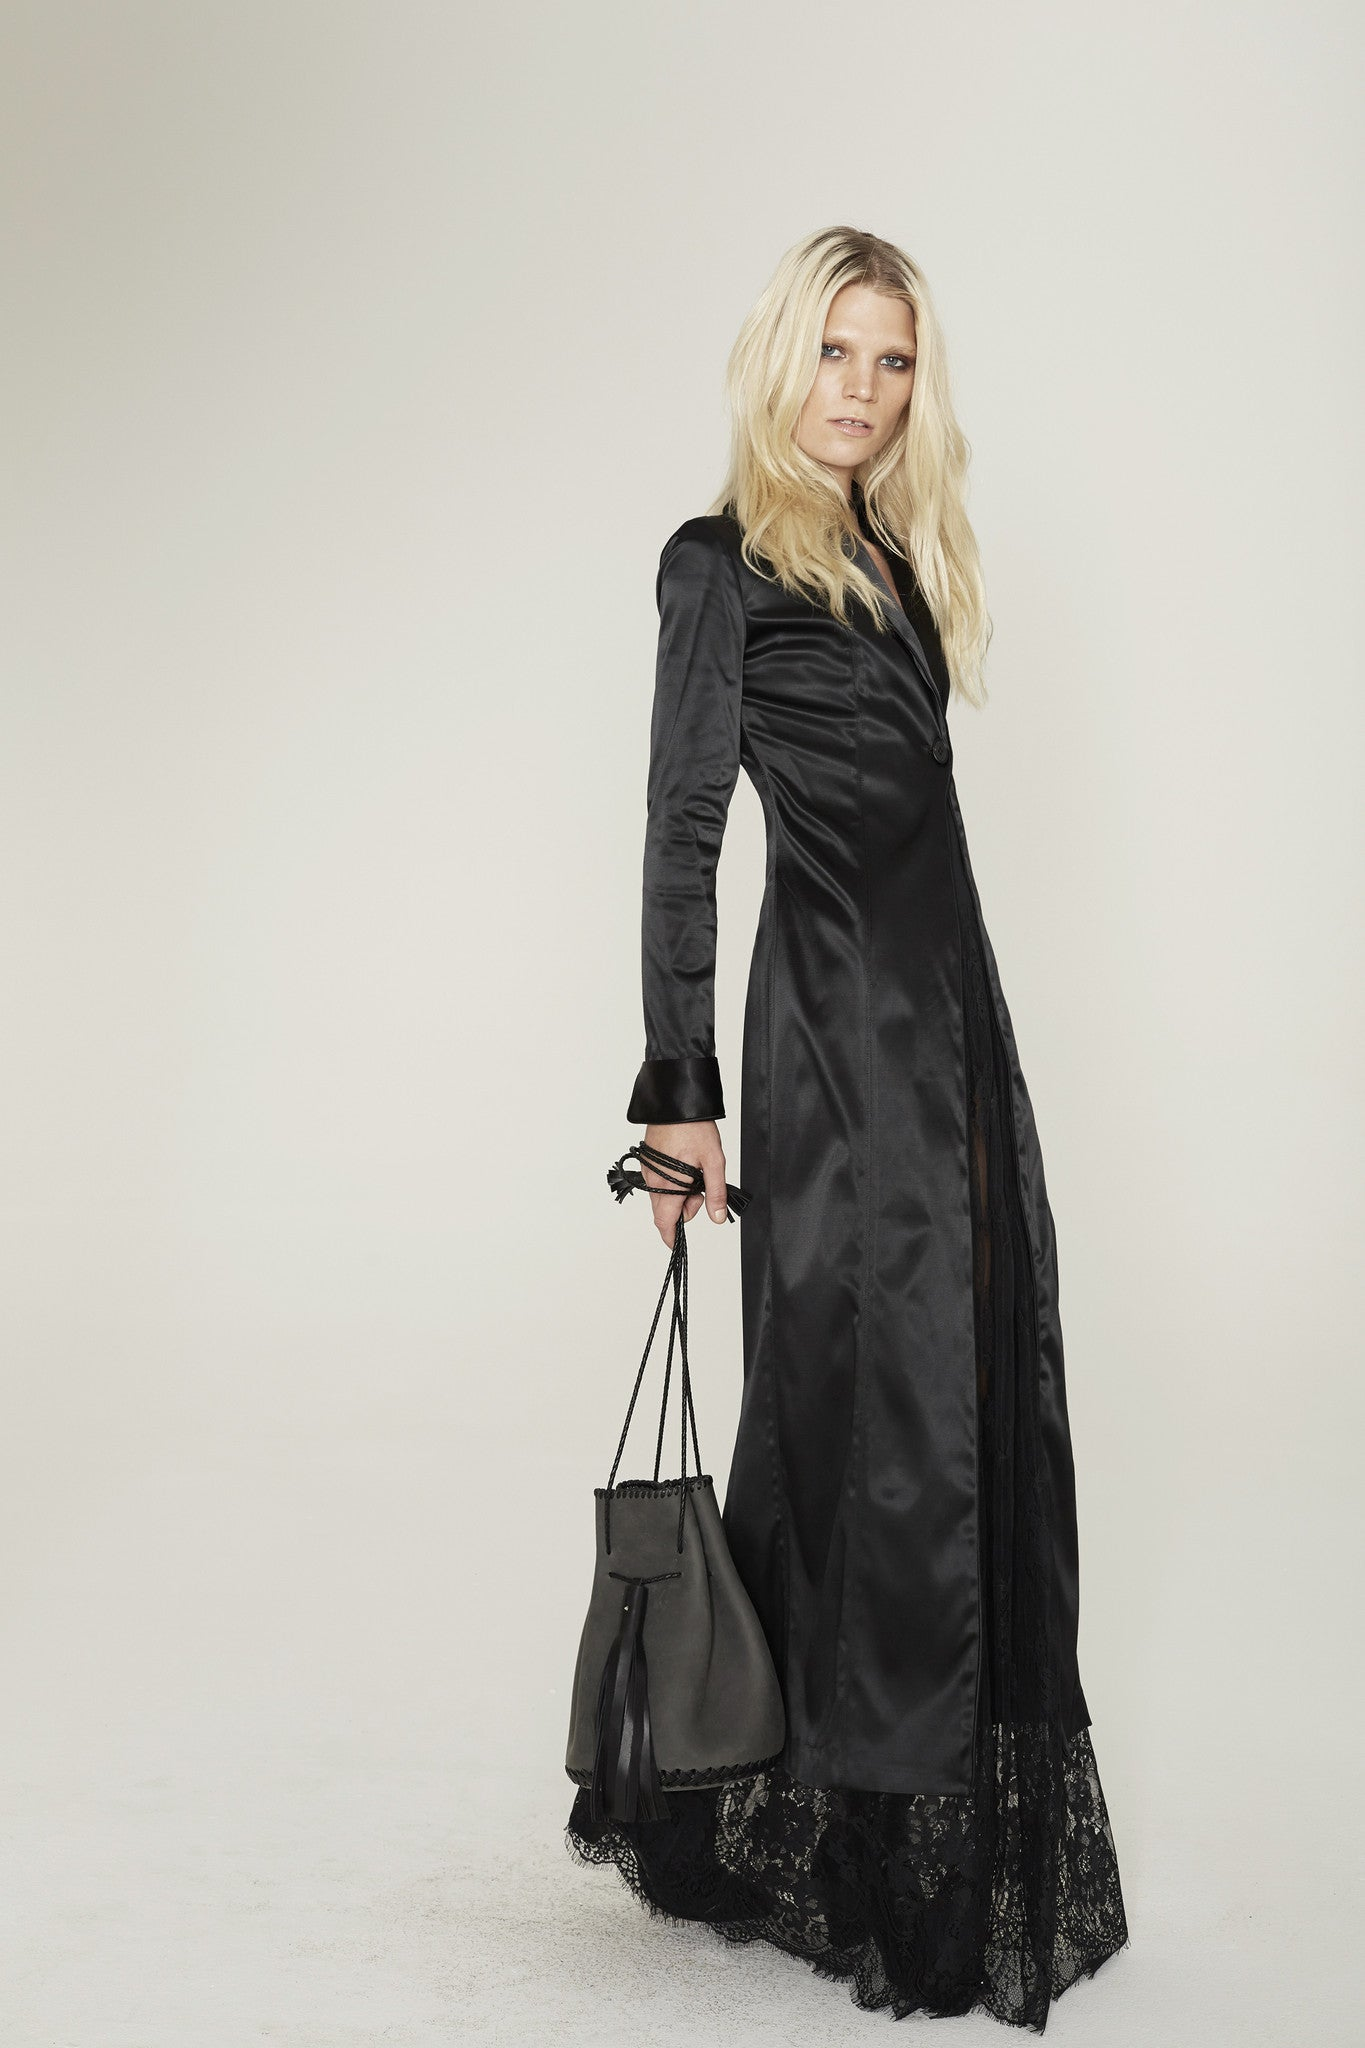 Chelsea Danielle Wichmann Silk Satin Long Tuxedo Jacket & Black Sheer french Lace Half Slip Skirt Wendy Nichol Clothing Fashion designer Handmade in NYC custom tailoring Fashion ready to wear show SS15